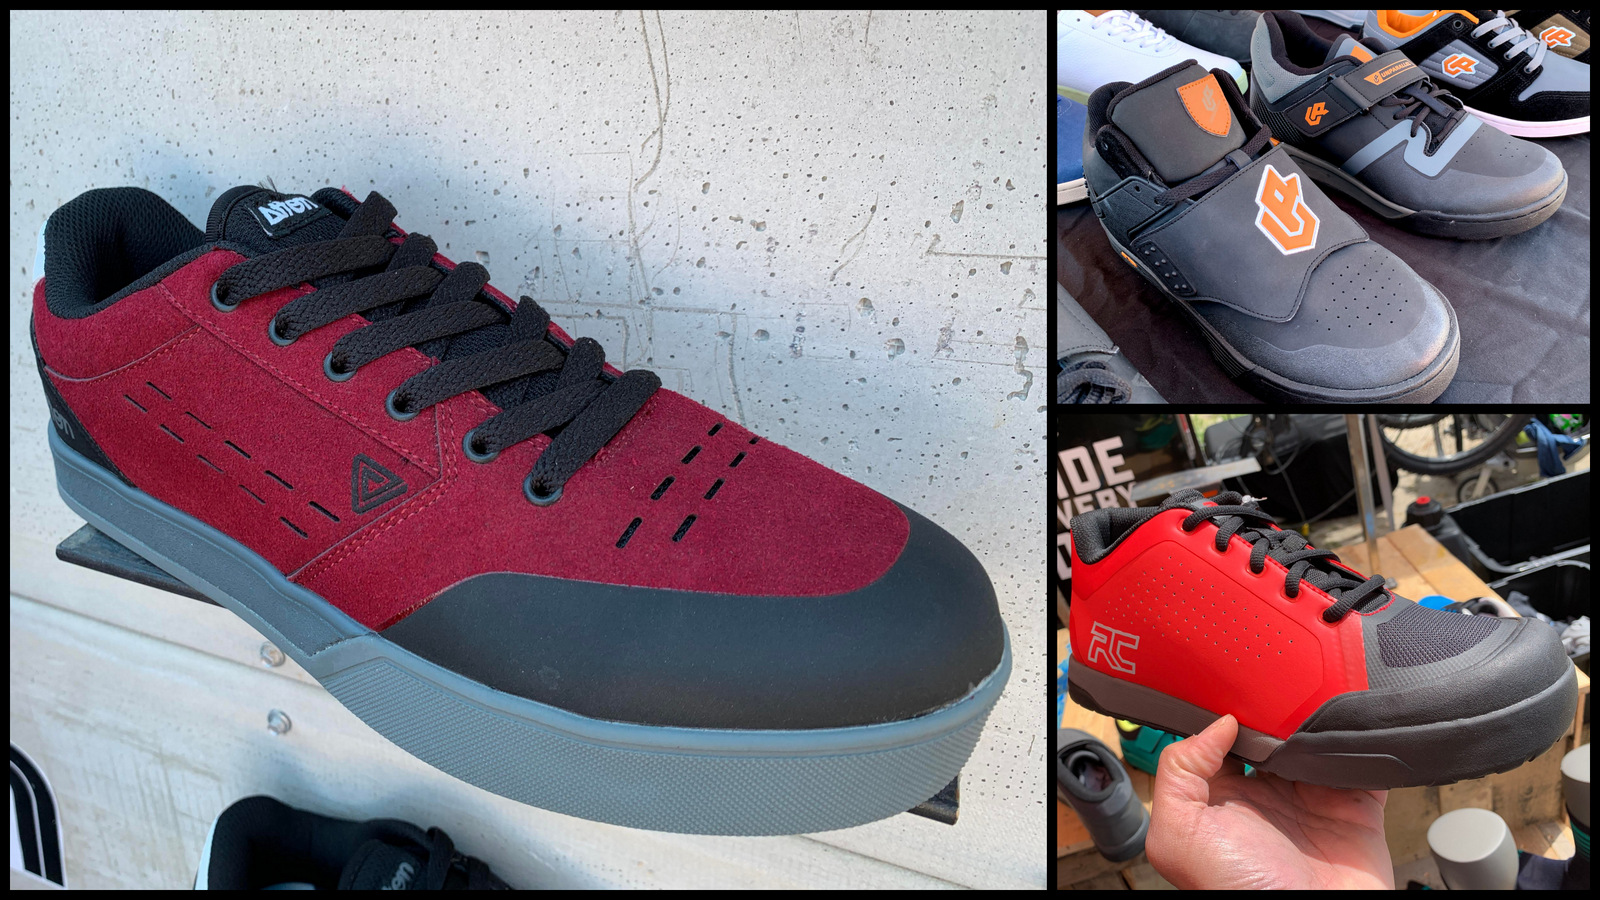 3 exciting new shoe brands at Sea Otter